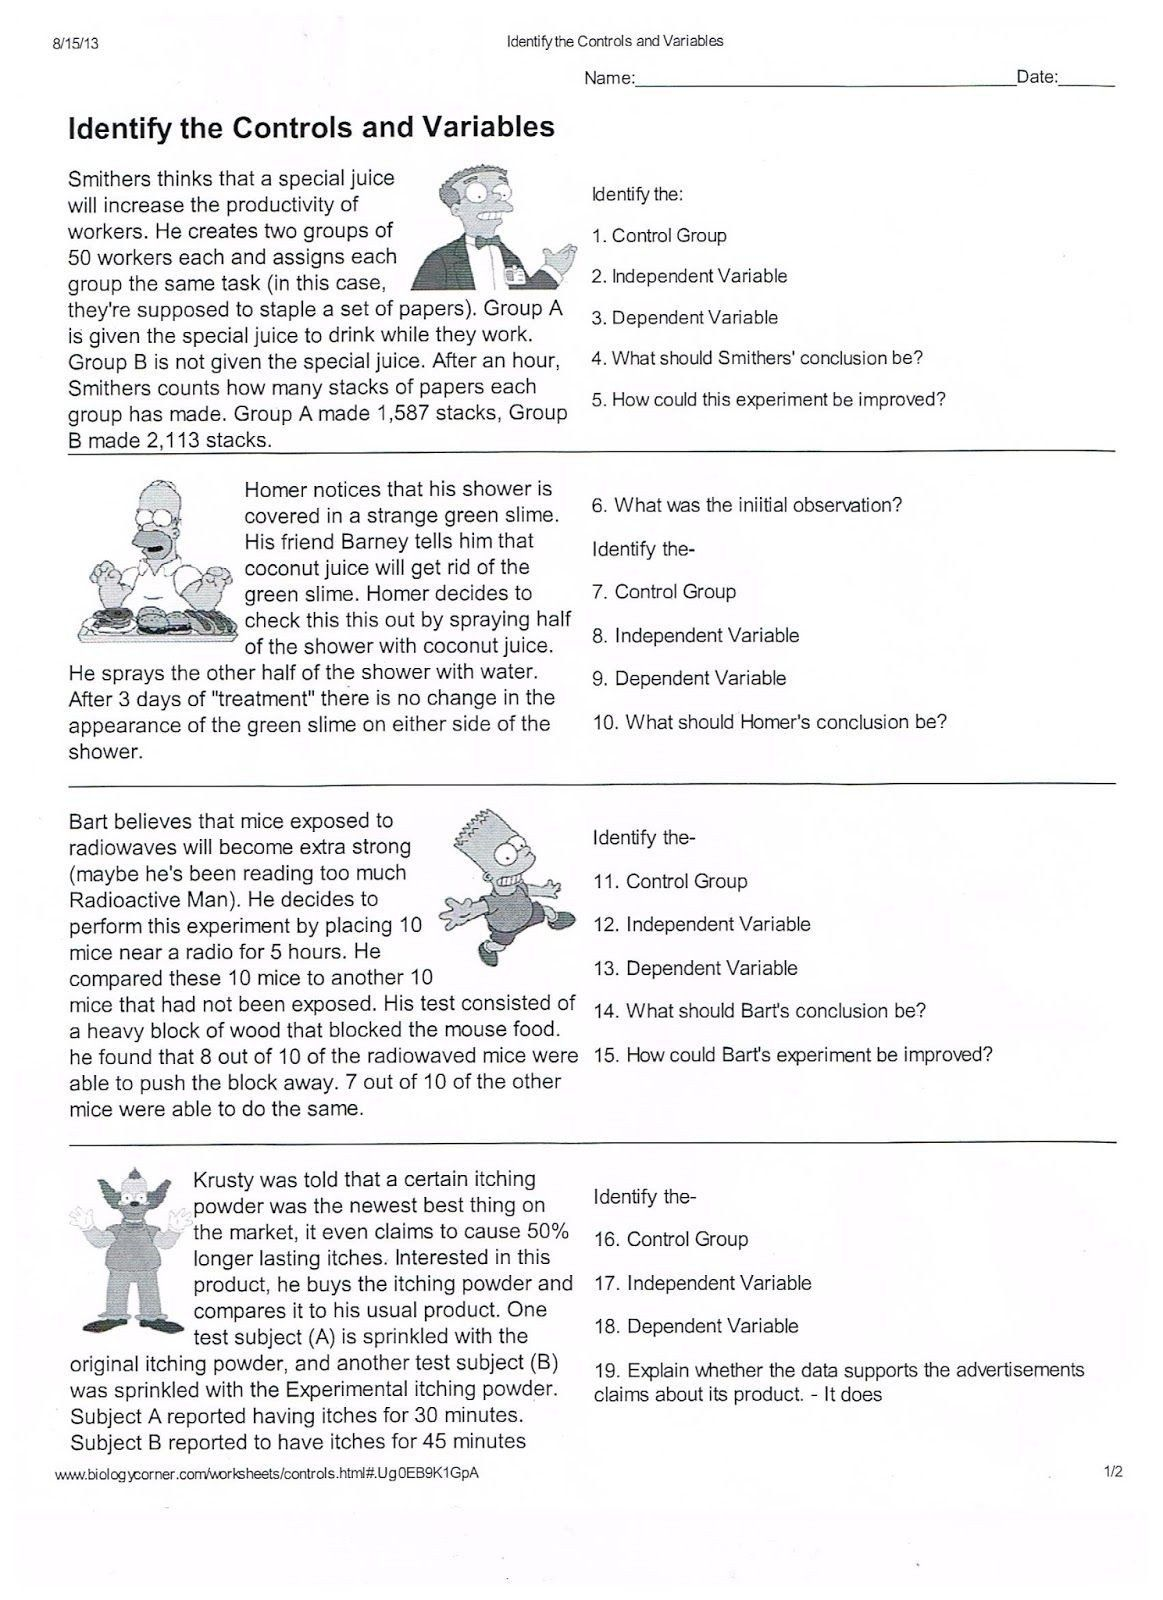 Experimental Variables Worksheet Answers Scientific Method Worksheets Pdf With Images In 2020 Scientific Method Worksheet Science Worksheets Scientific Method